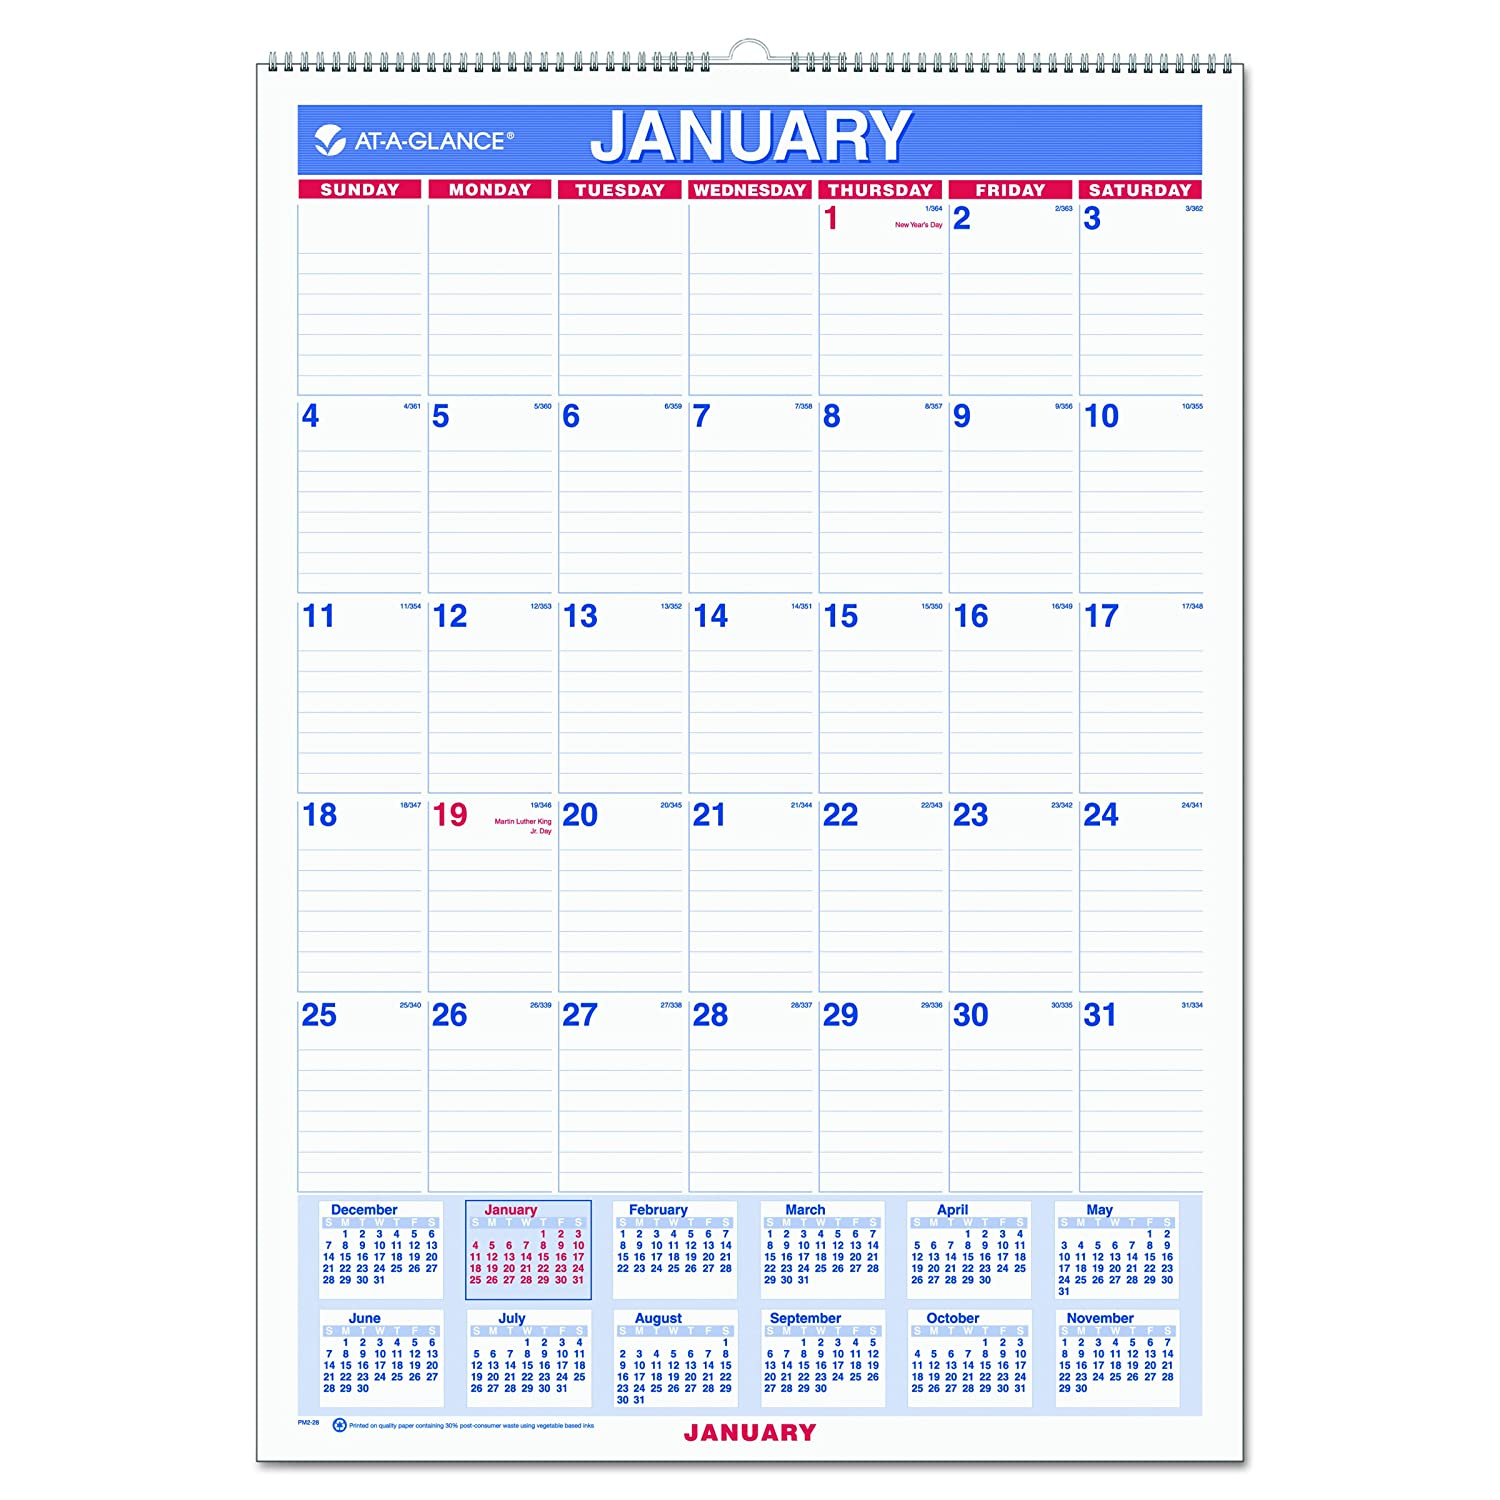 amazoncom at a glance wall calendar 2017 monthly 12 x 17 ruled wirebound pm2 28 office calendars planners and accessories office products